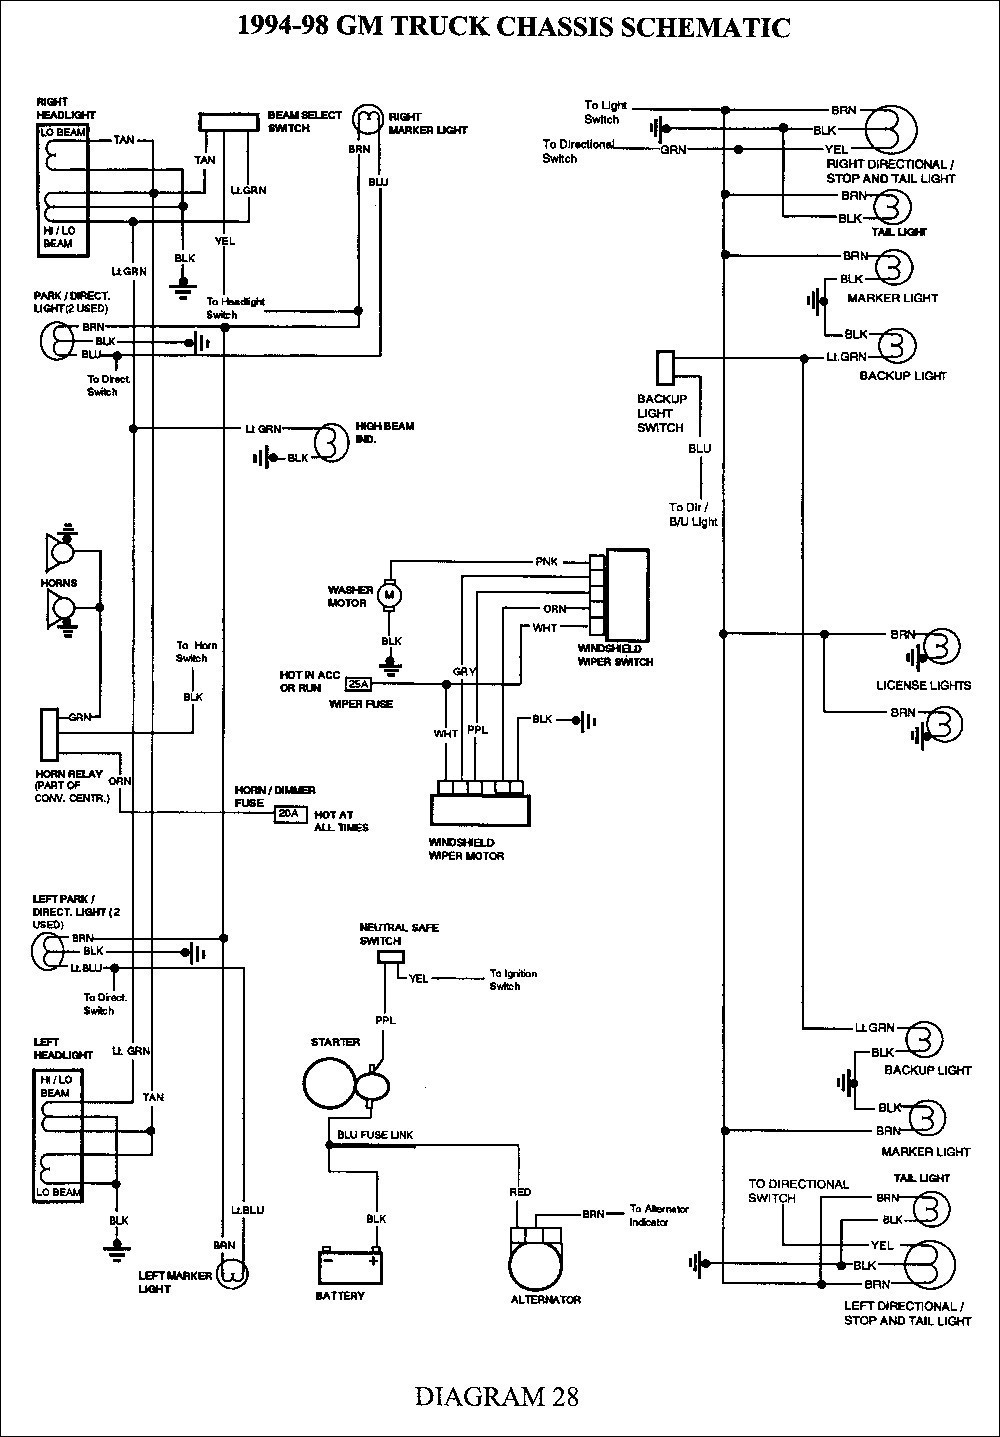 Diagram Land Rover Tail Light Wiring Diagram Full Version Hd Quality Wiring Diagram P8o8kemultiply Poderonevecchio It